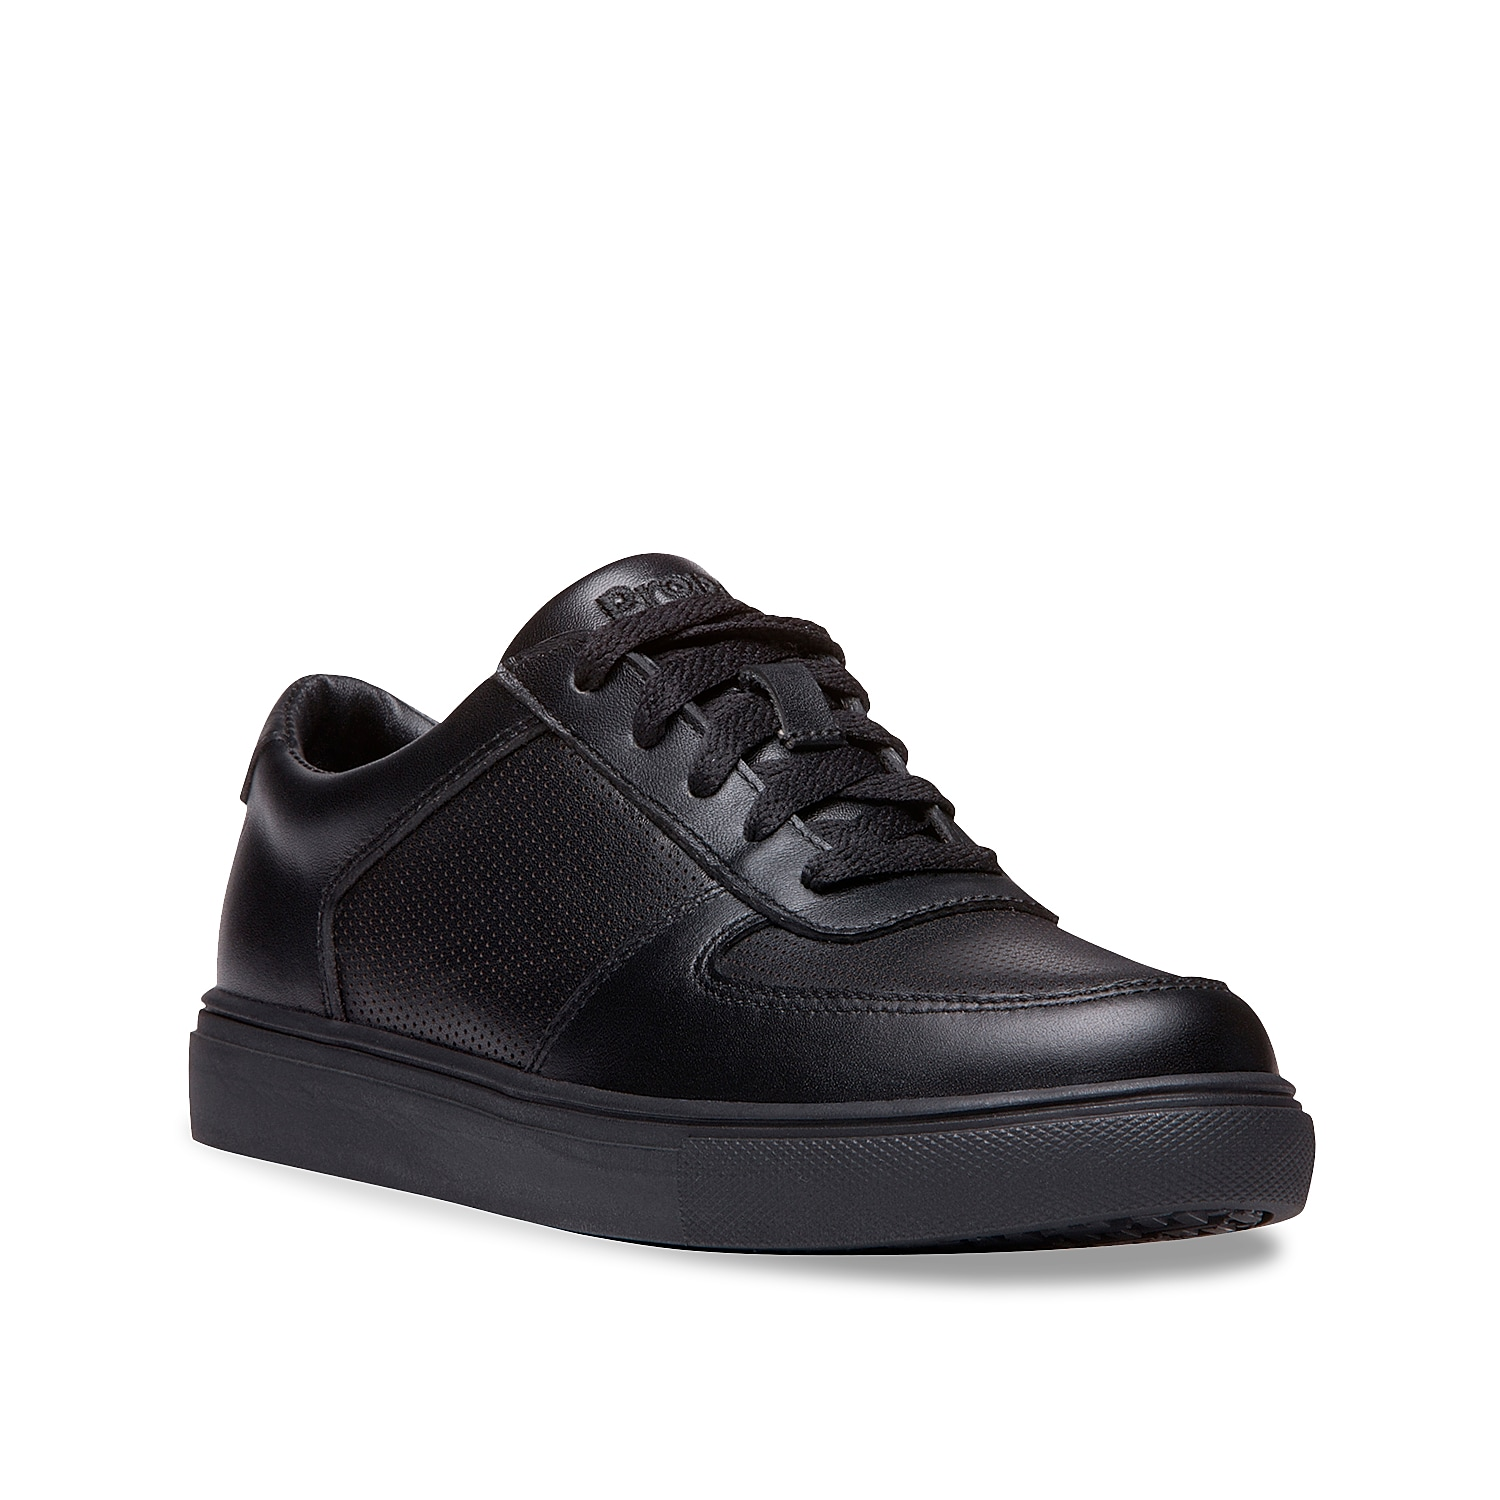 Stay in style while wearing the Nessie work sneaker from Propet. This lace-up sneaker features a perforated leather upper and slip-resistant rubber sole for extra traction on the job!